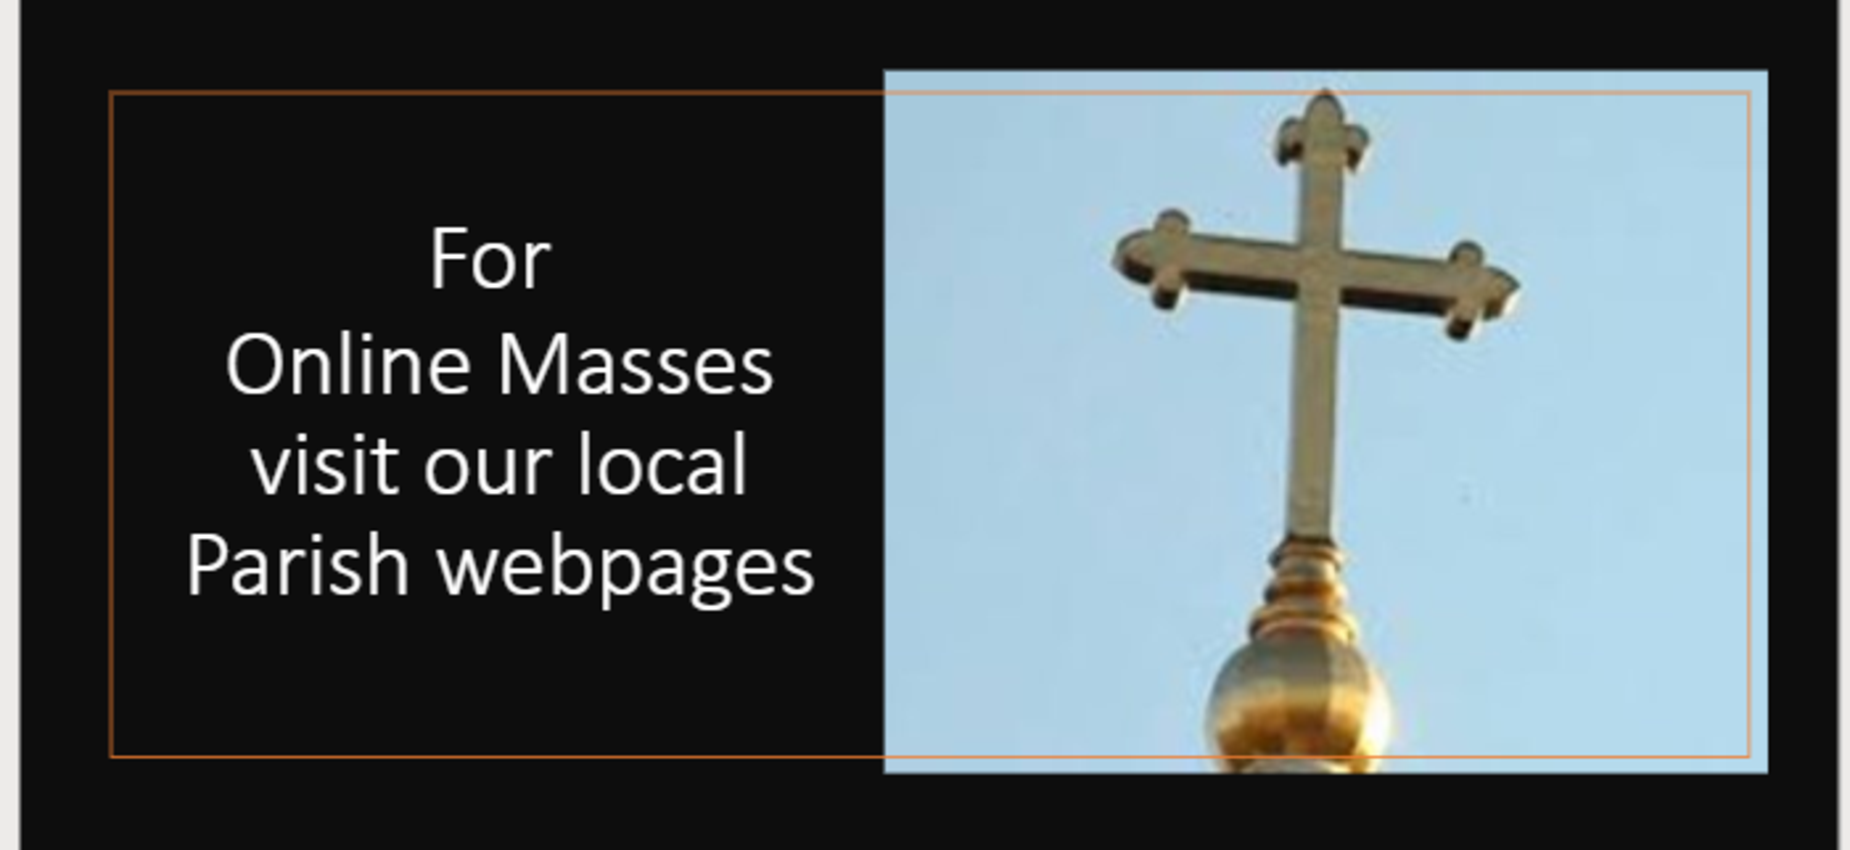 For Online Masses click to access local parishes